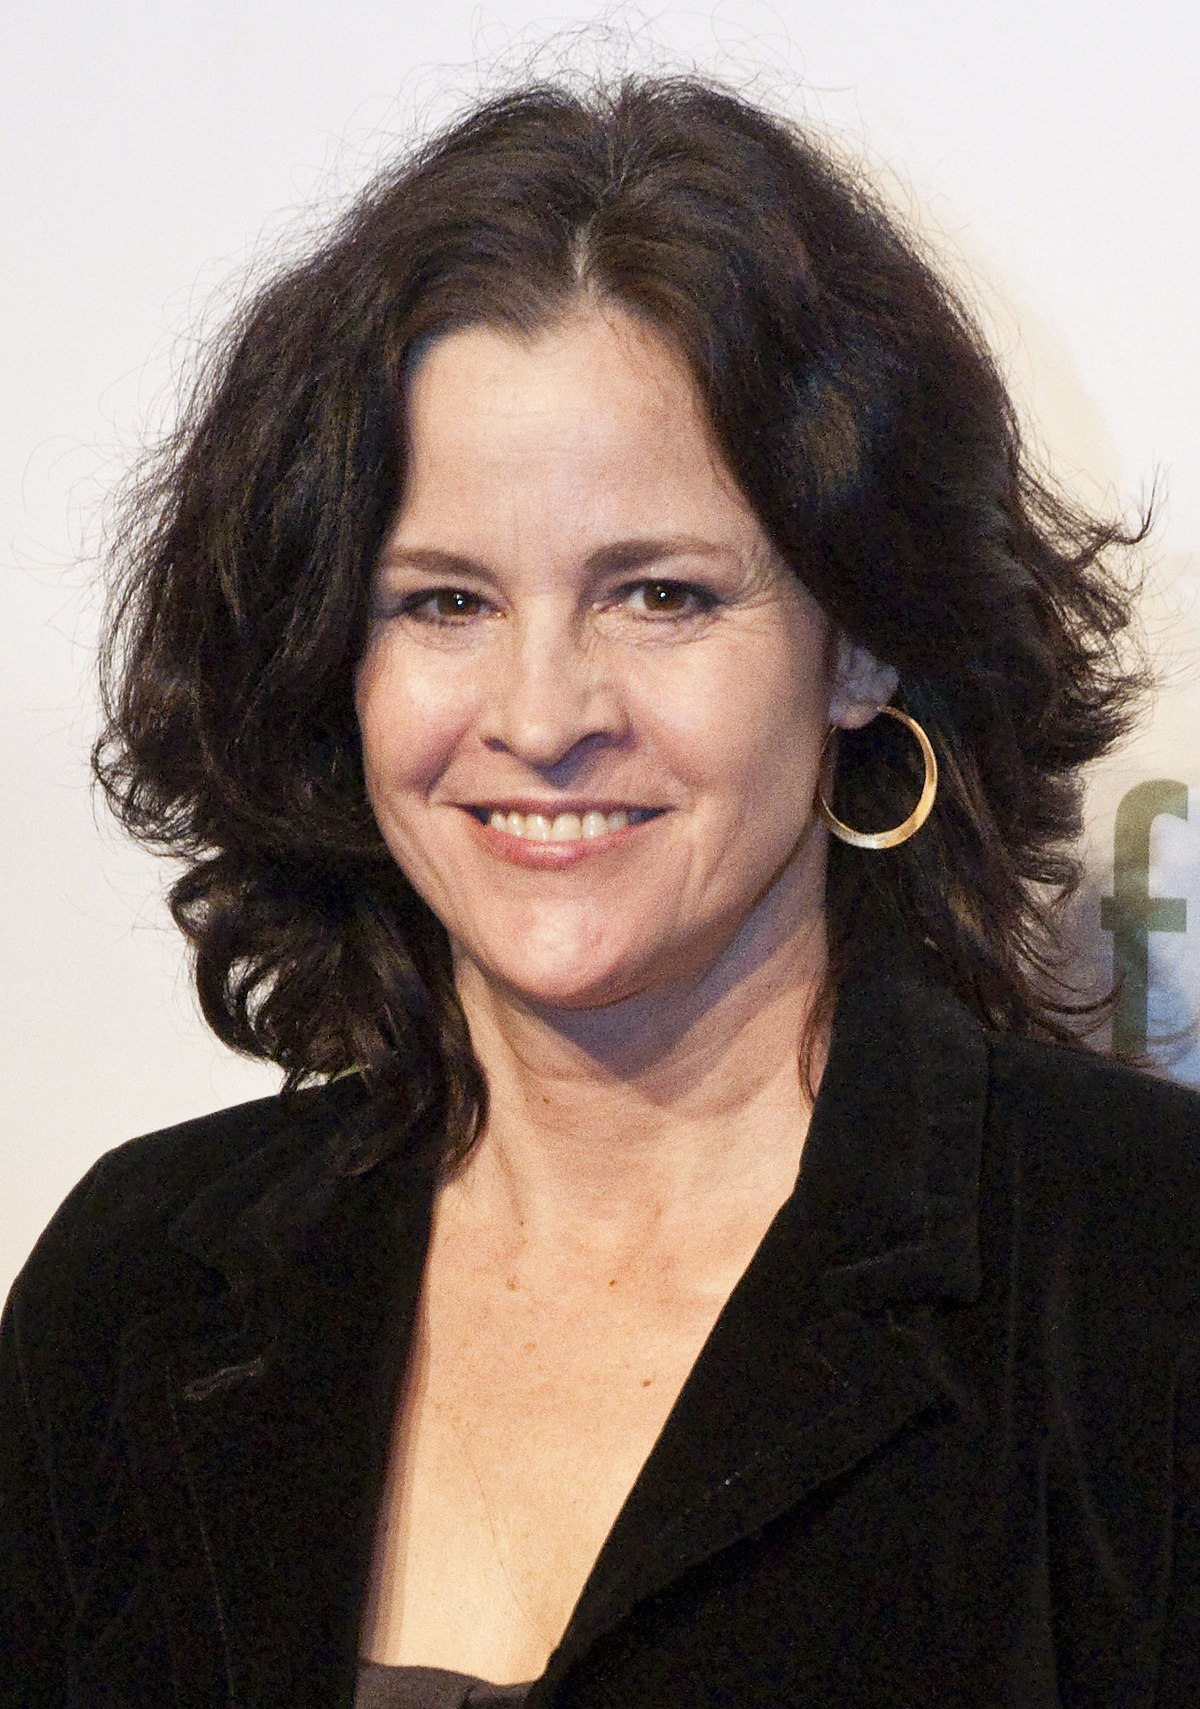 The 58-year old daughter of father (?) and mother(?) Ally Sheedy in 2021 photo. Ally Sheedy earned a  million dollar salary - leaving the net worth at  million in 2021